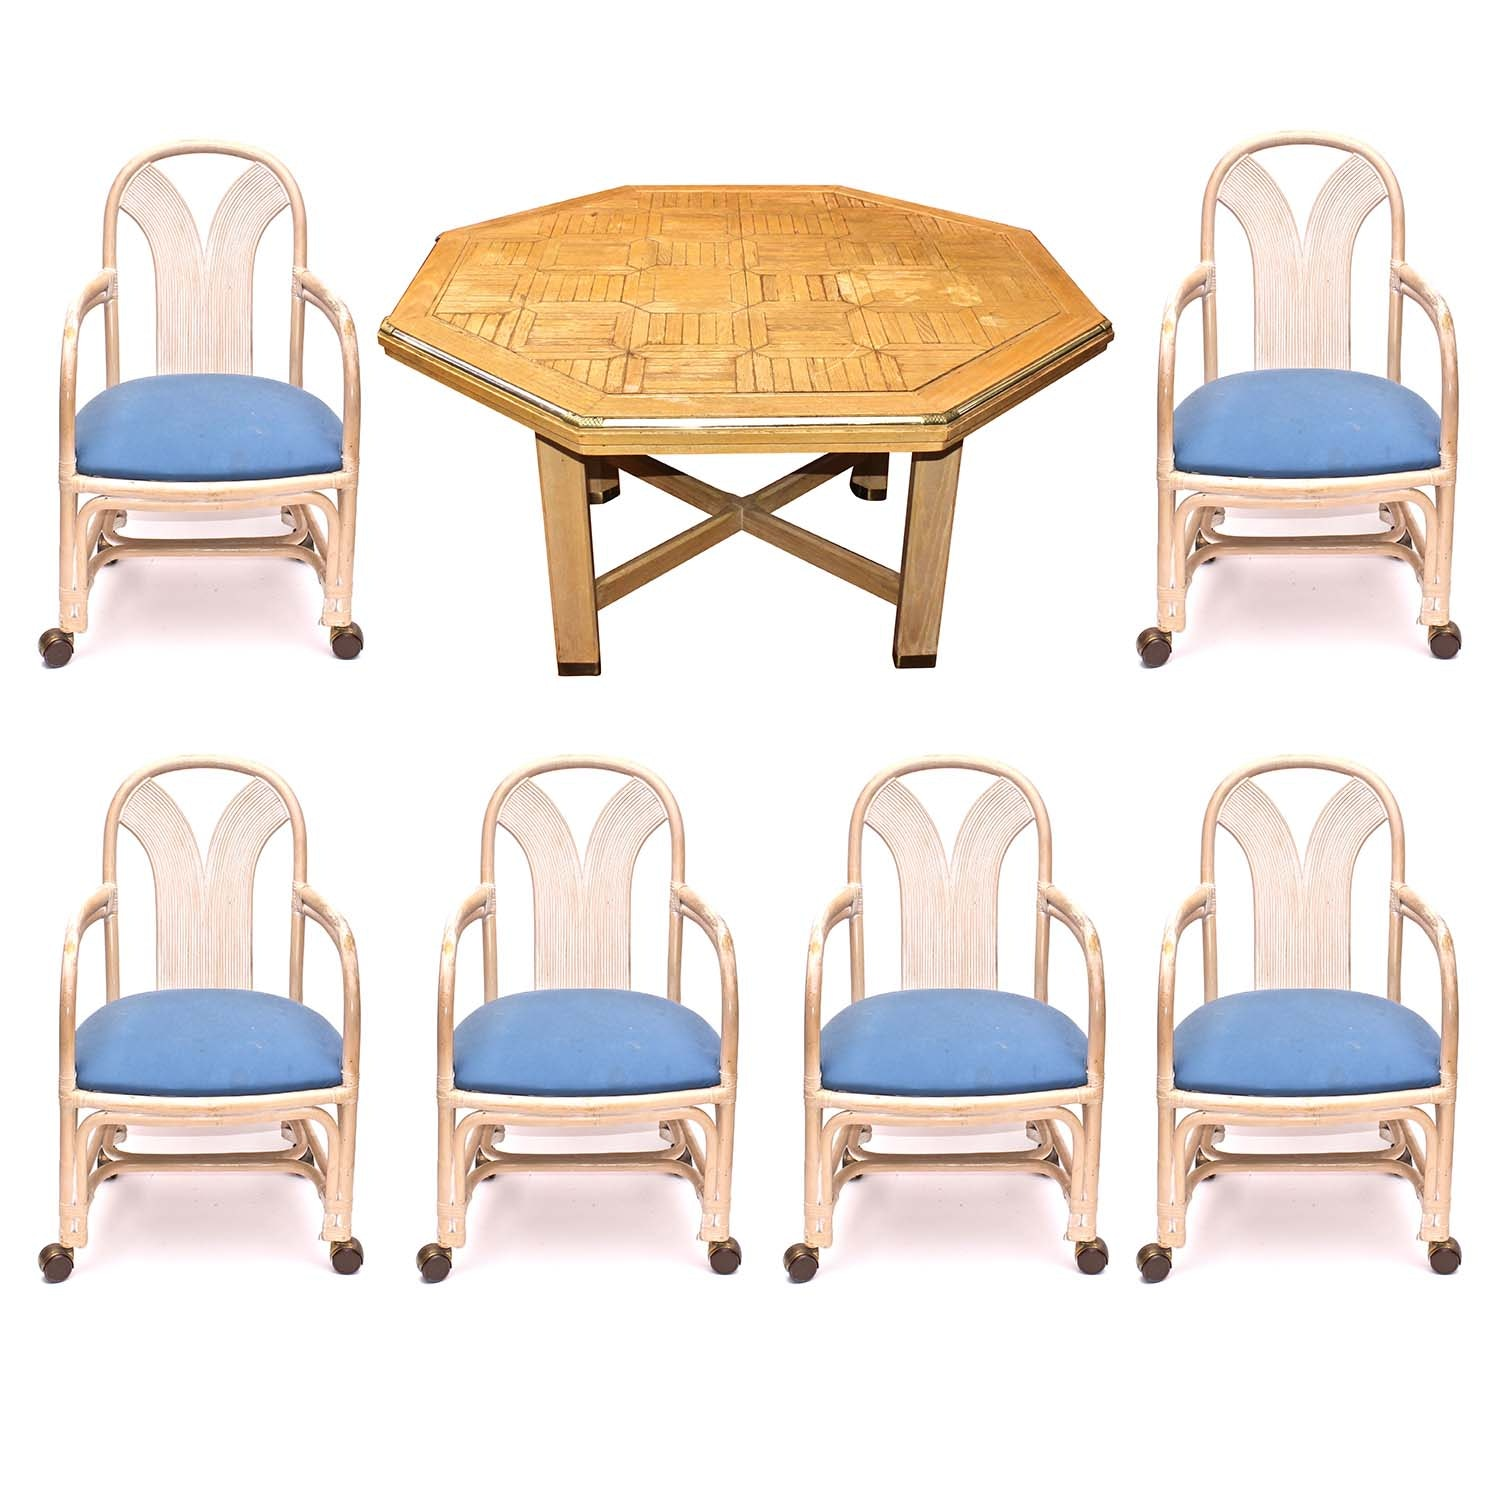 Contemporary Dining Table and Chair Set